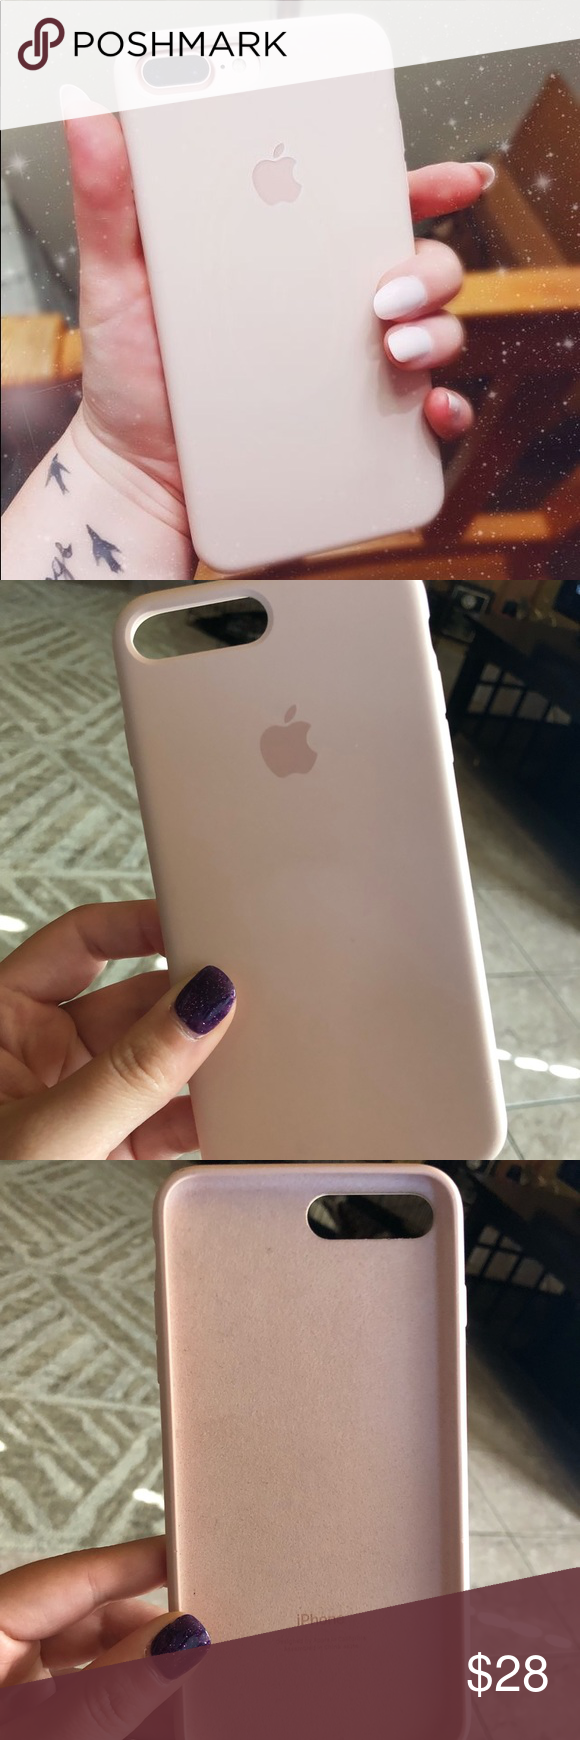 apple iphone 8 plus case pink sand